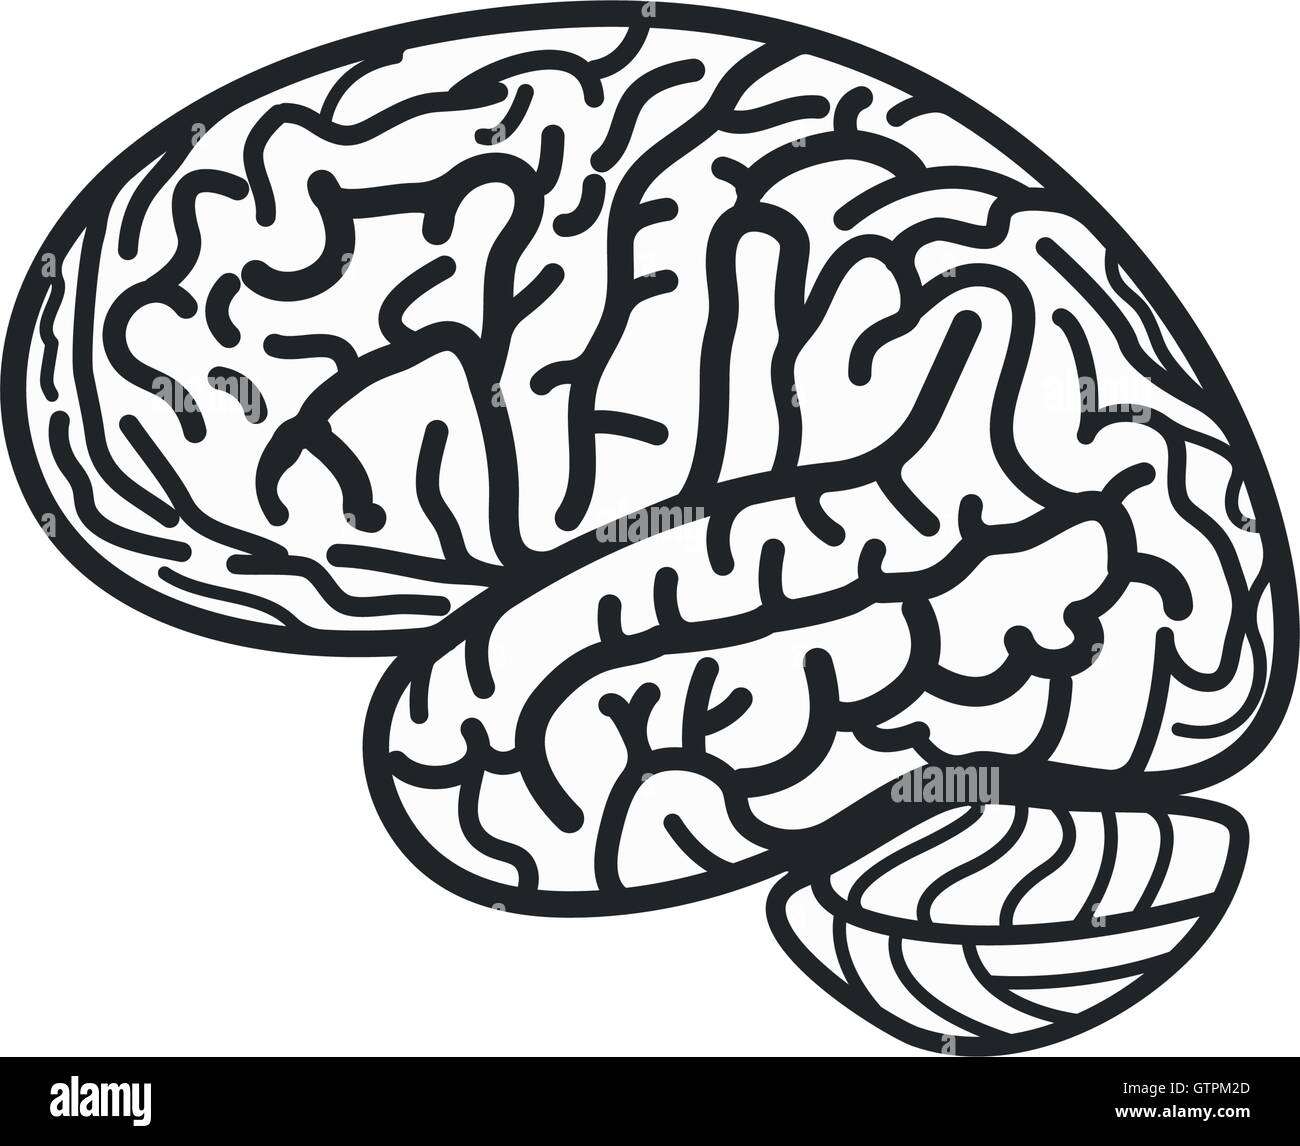 Noir et blanc isolé contour cerveau logo Vector. Silhouette du gyrus logotype. L'intelligence humaine l'illustration. Photo Stock